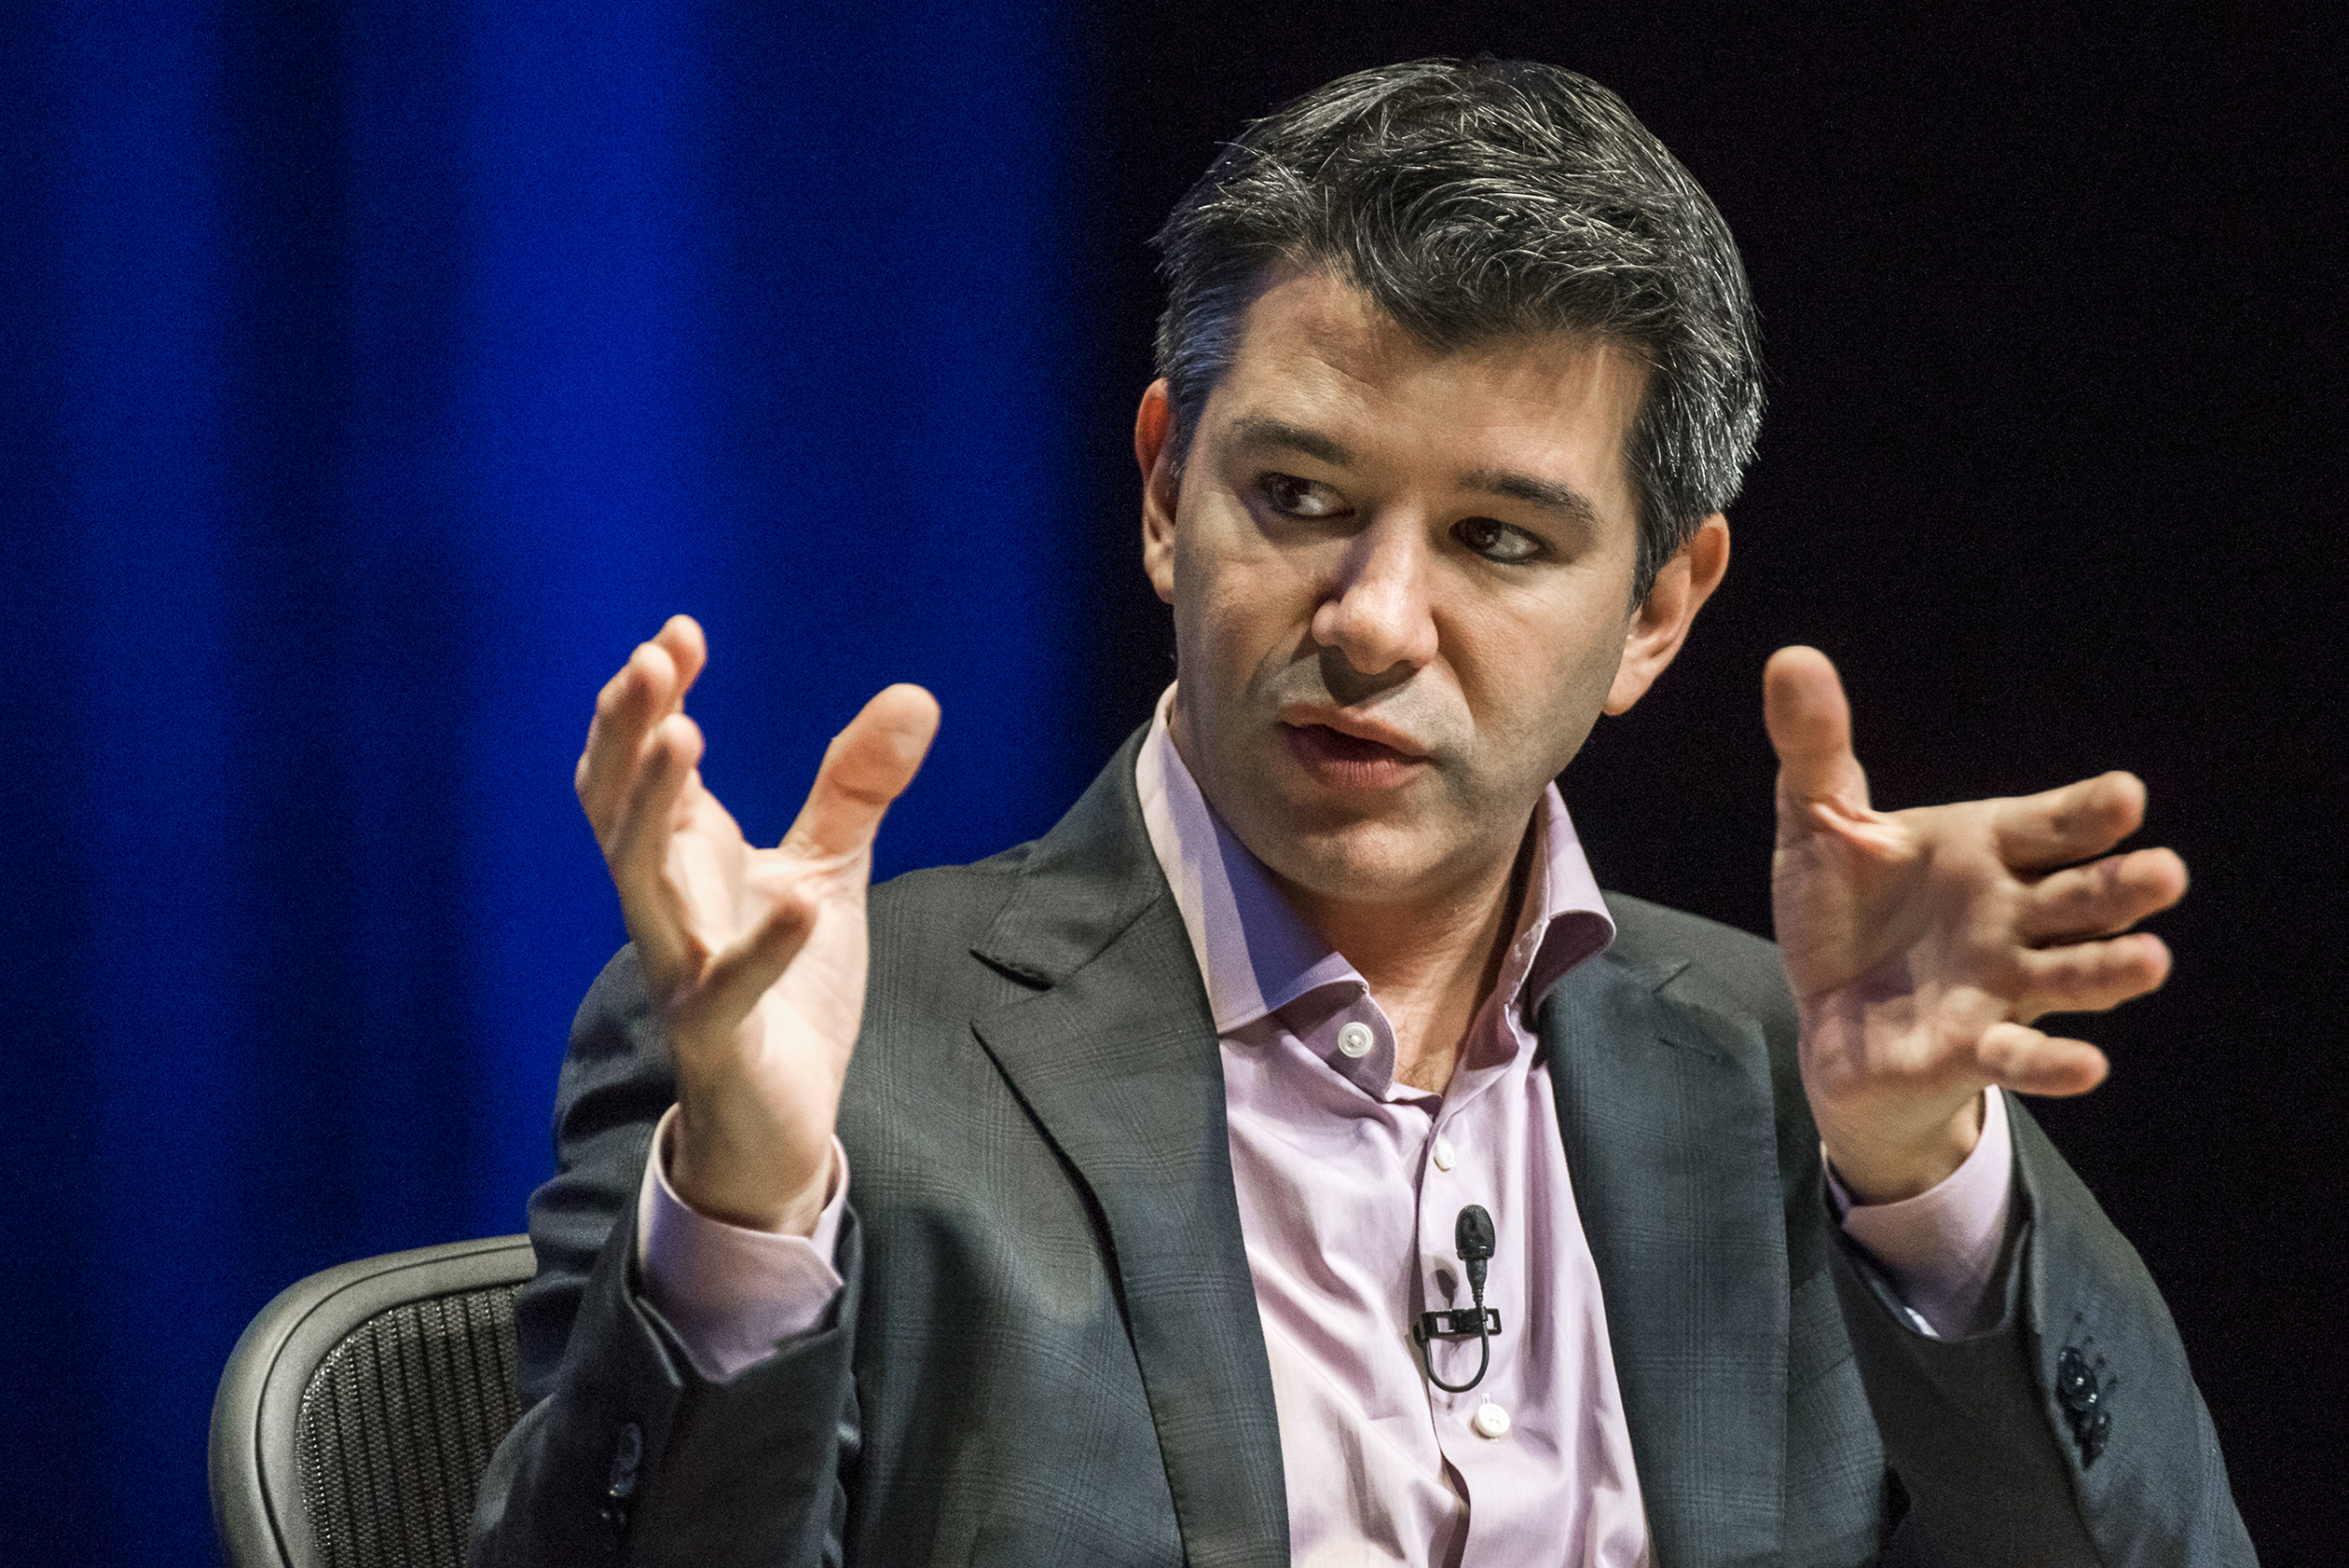 Travis Kalanick, CEO of Uber